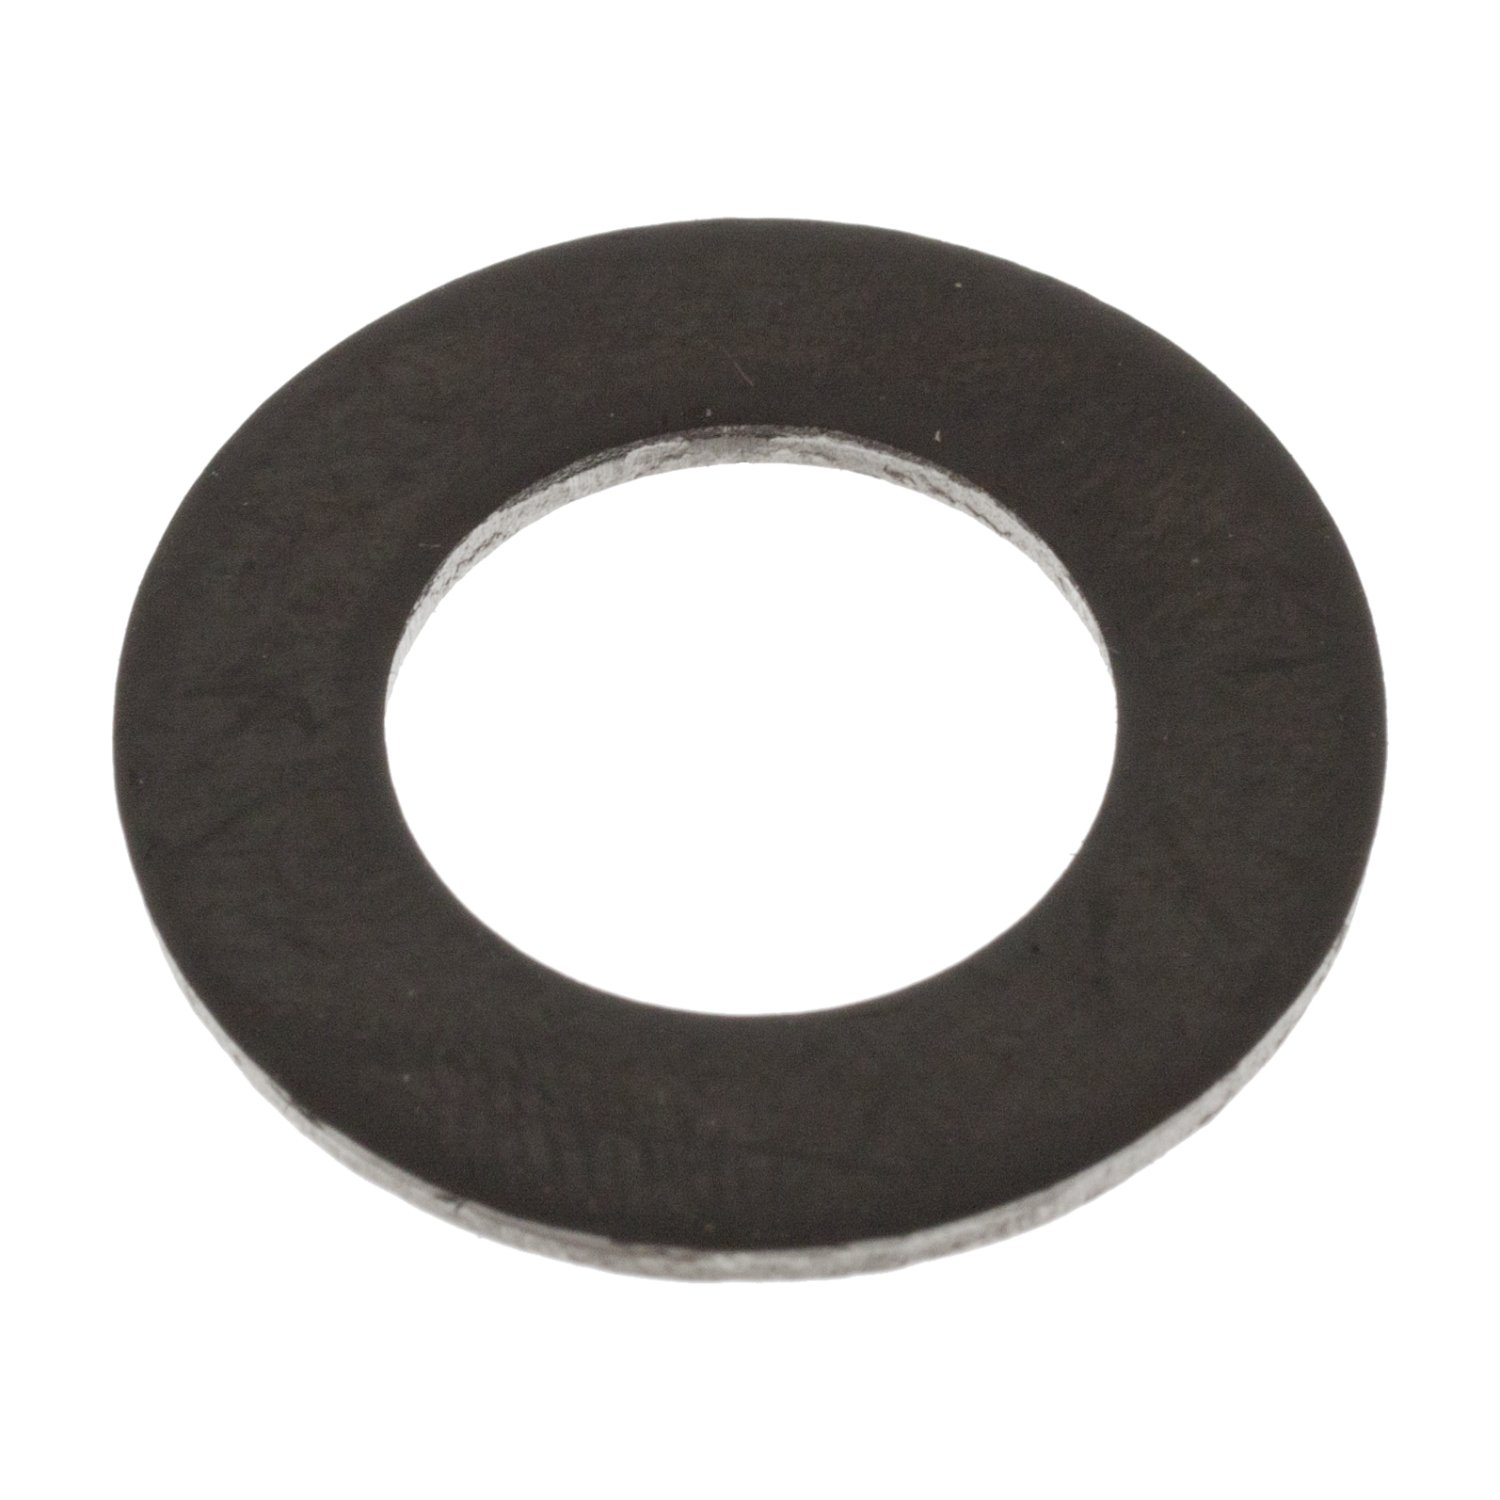 febi bilstein 30263 seal ring for oil drain plug - Pack of 1